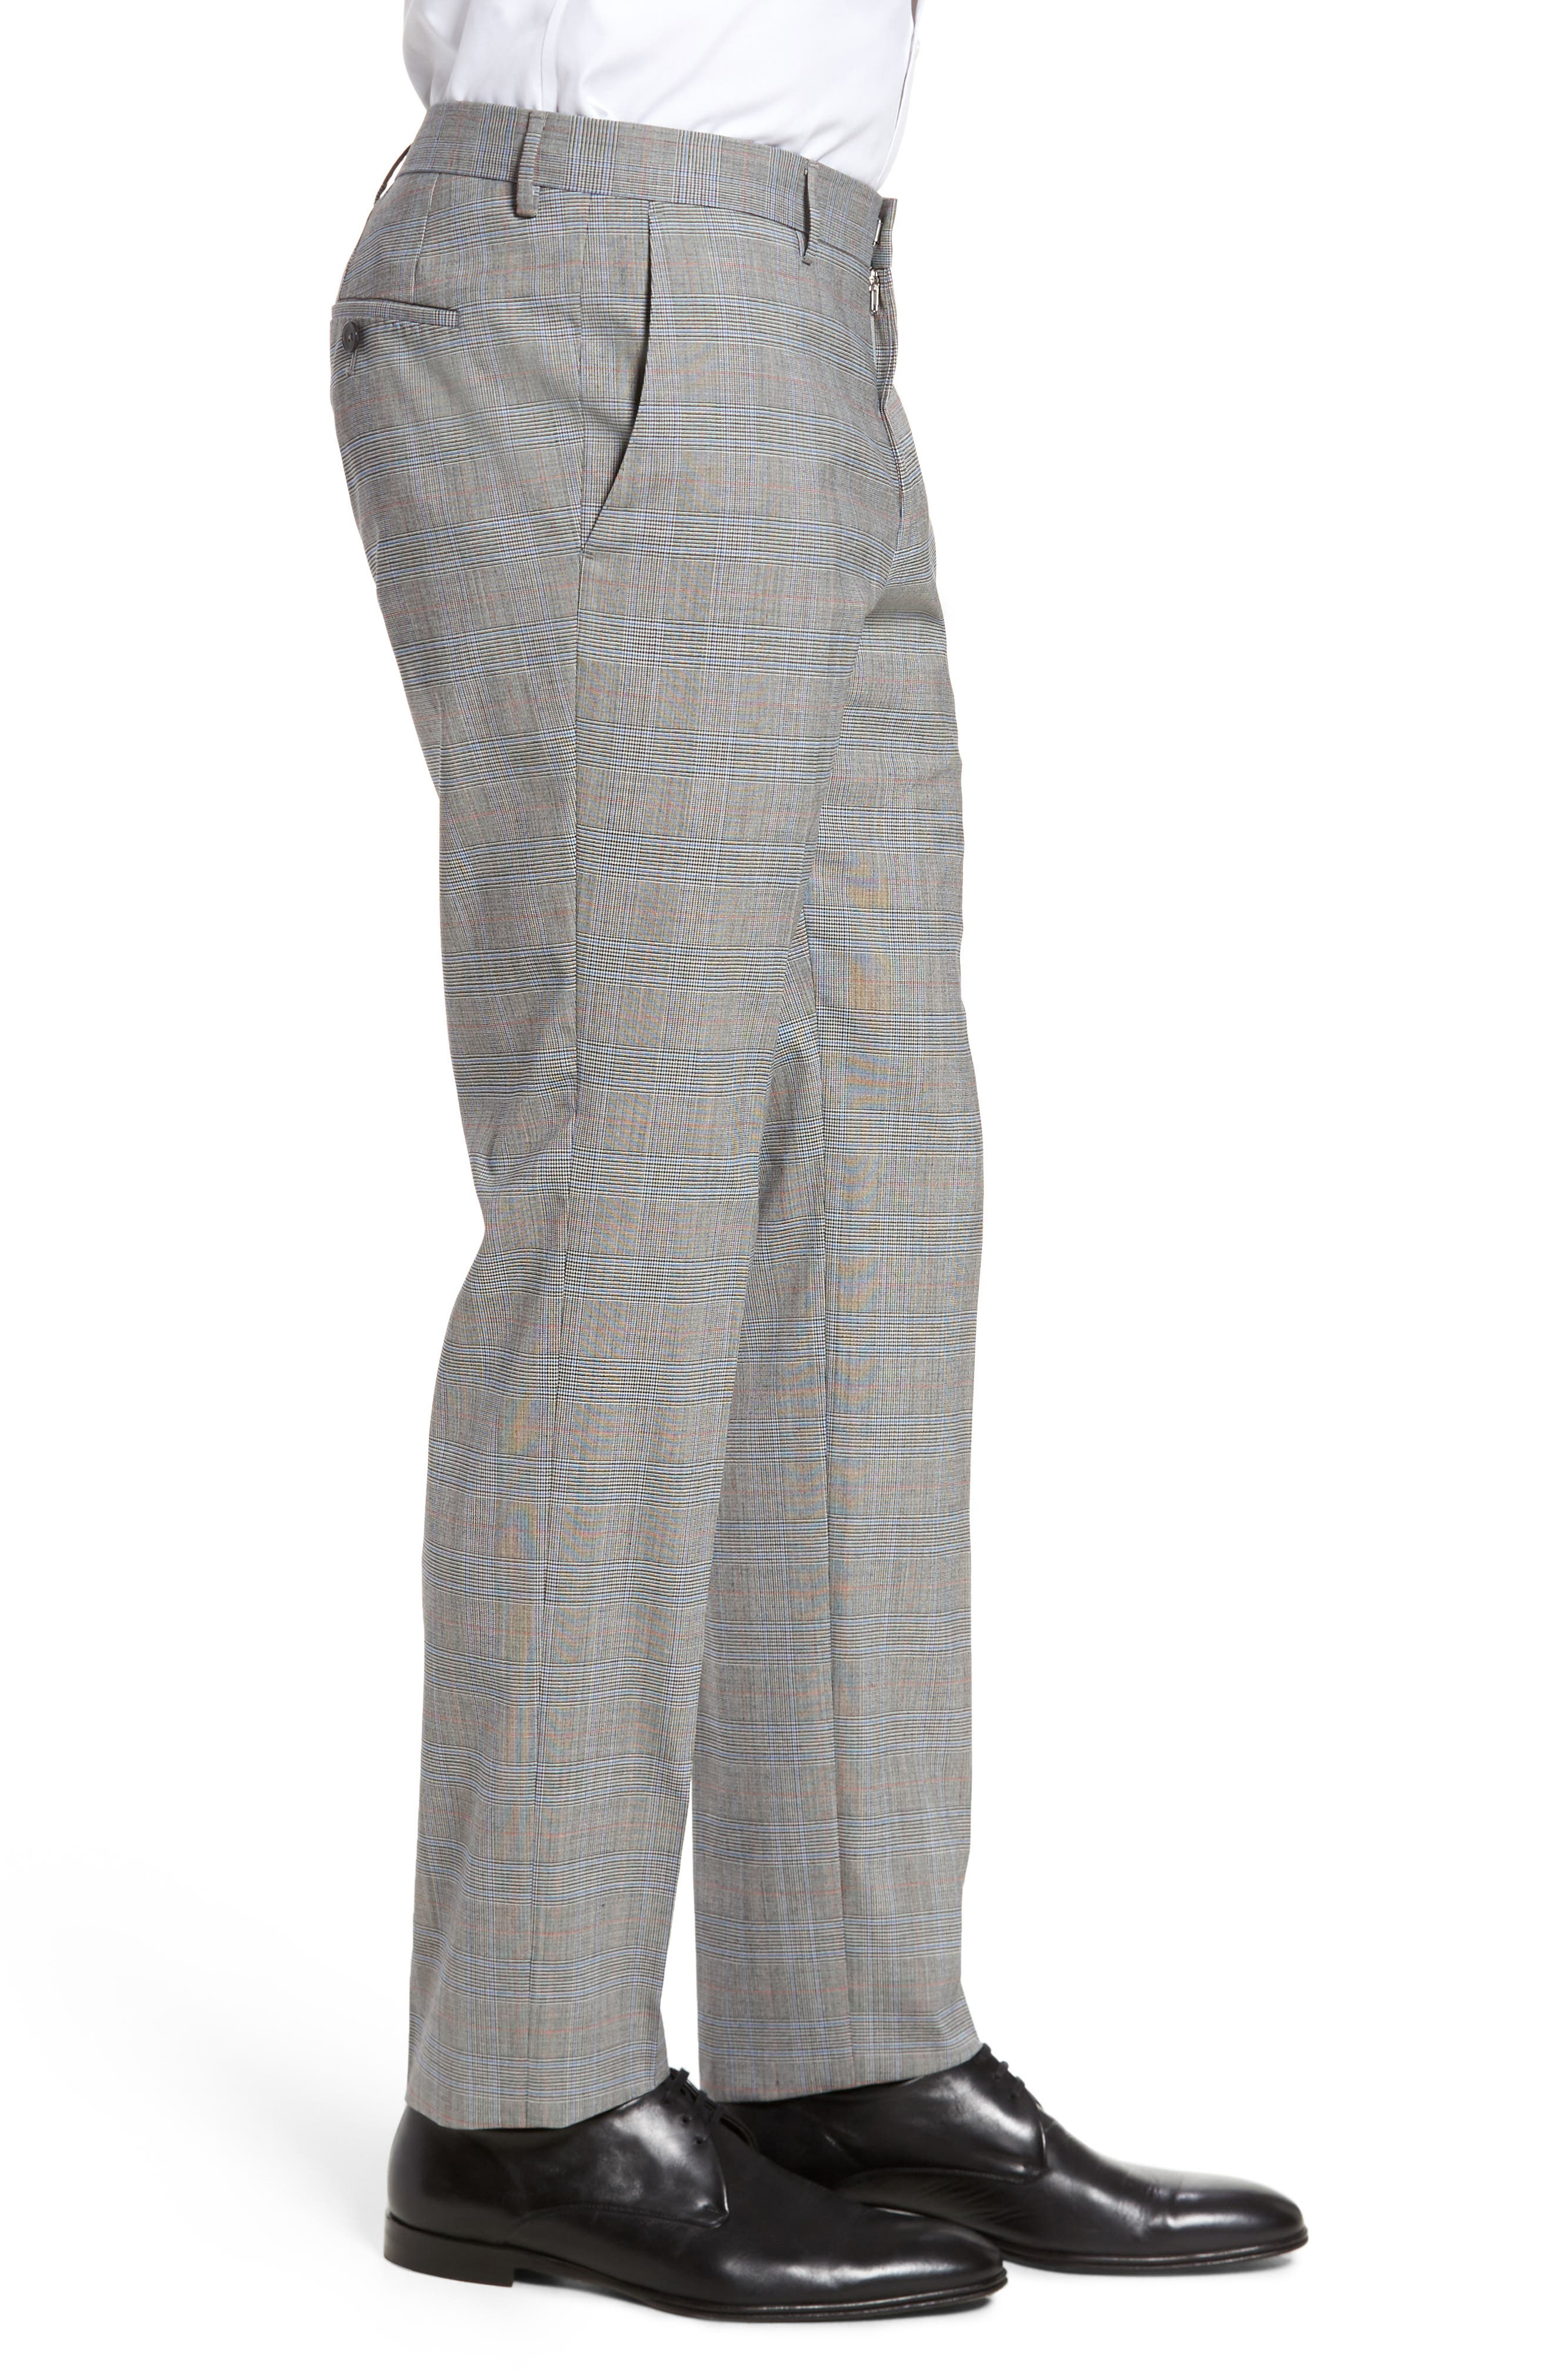 Benso Flat Front Plaid Wool Blend Trousers,                             Alternate thumbnail 3, color,                             Open Grey